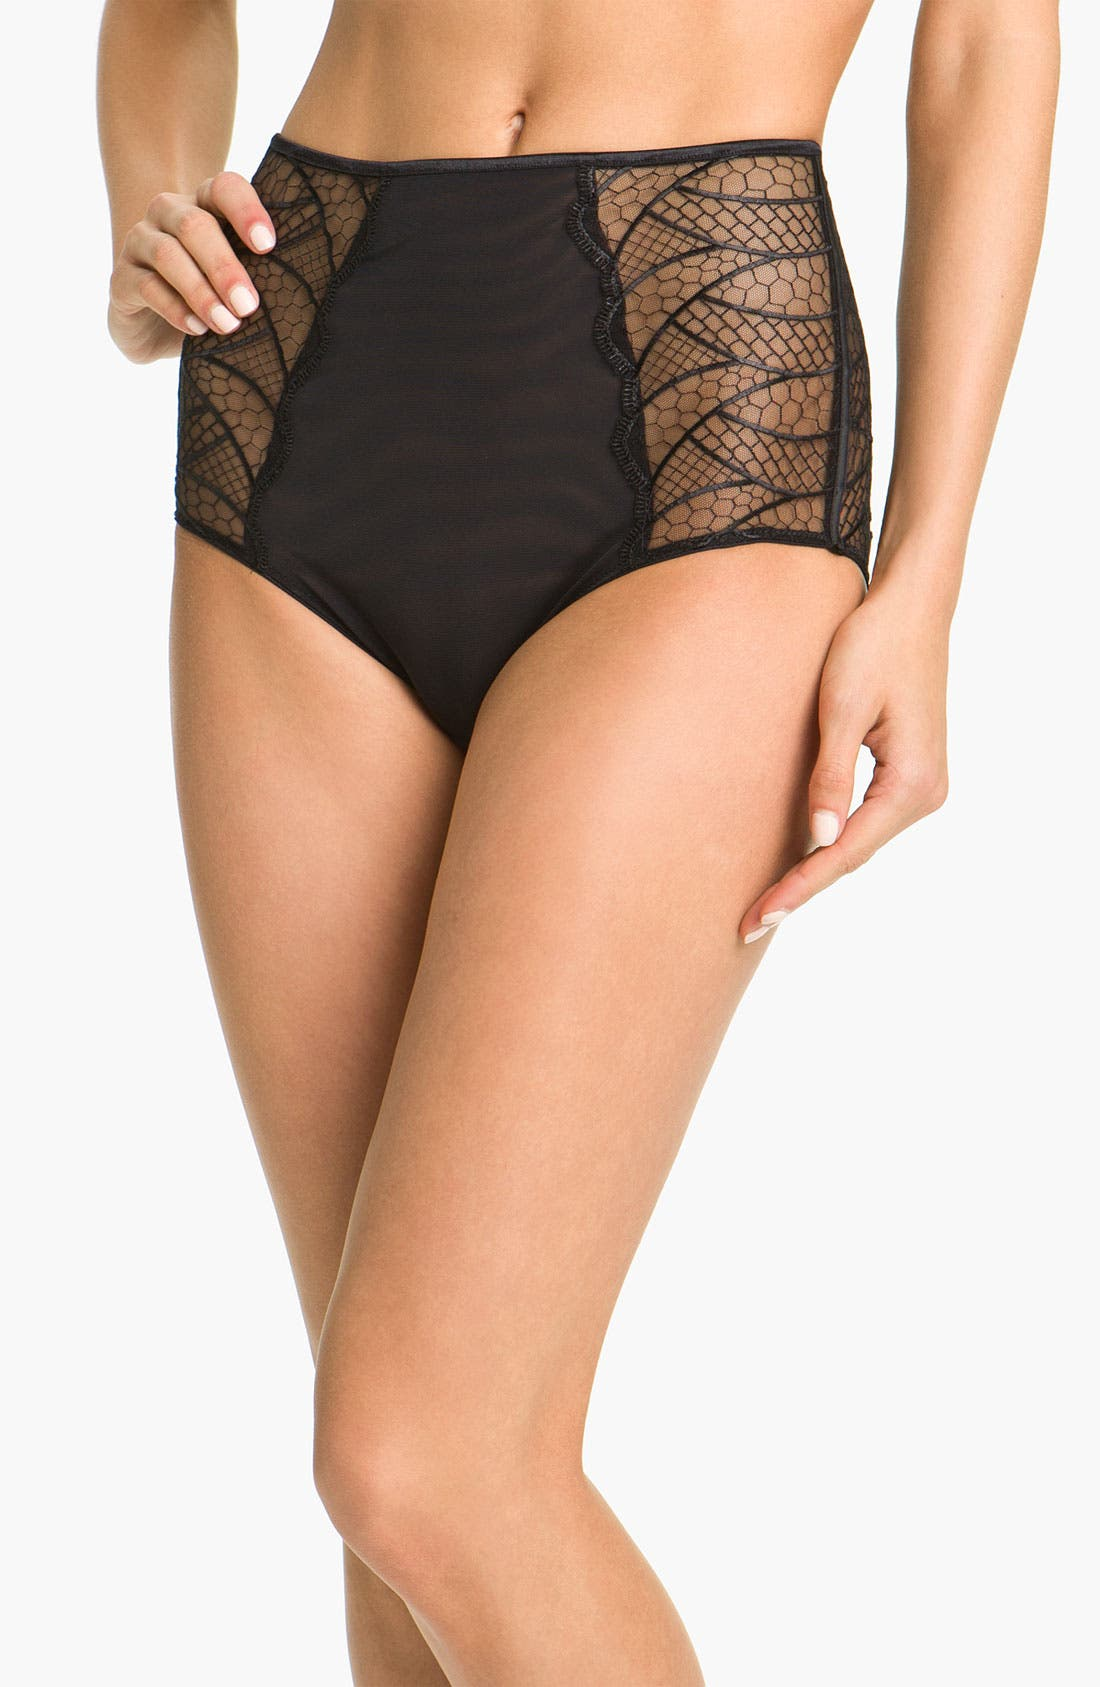 Alternate Image 1 Selected - Chantelle Intimates 'Hypnotique' High Waist Briefs